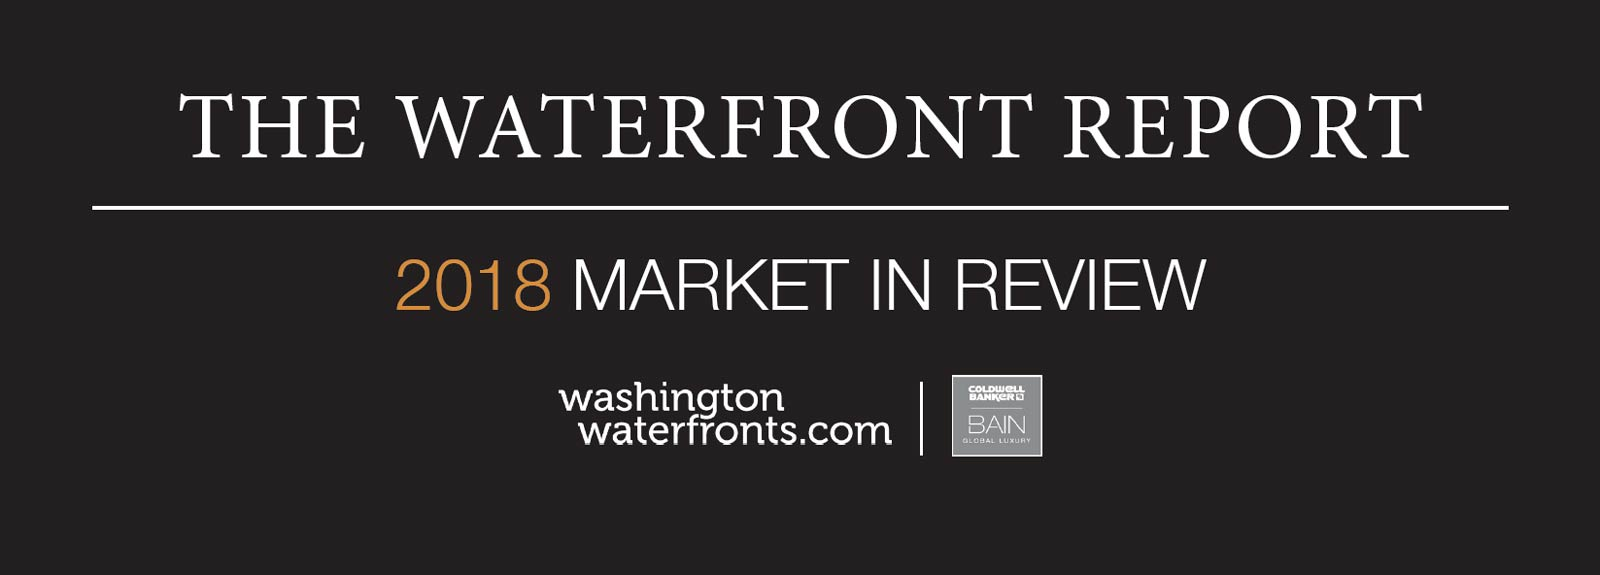 The Waterfront Report Heading